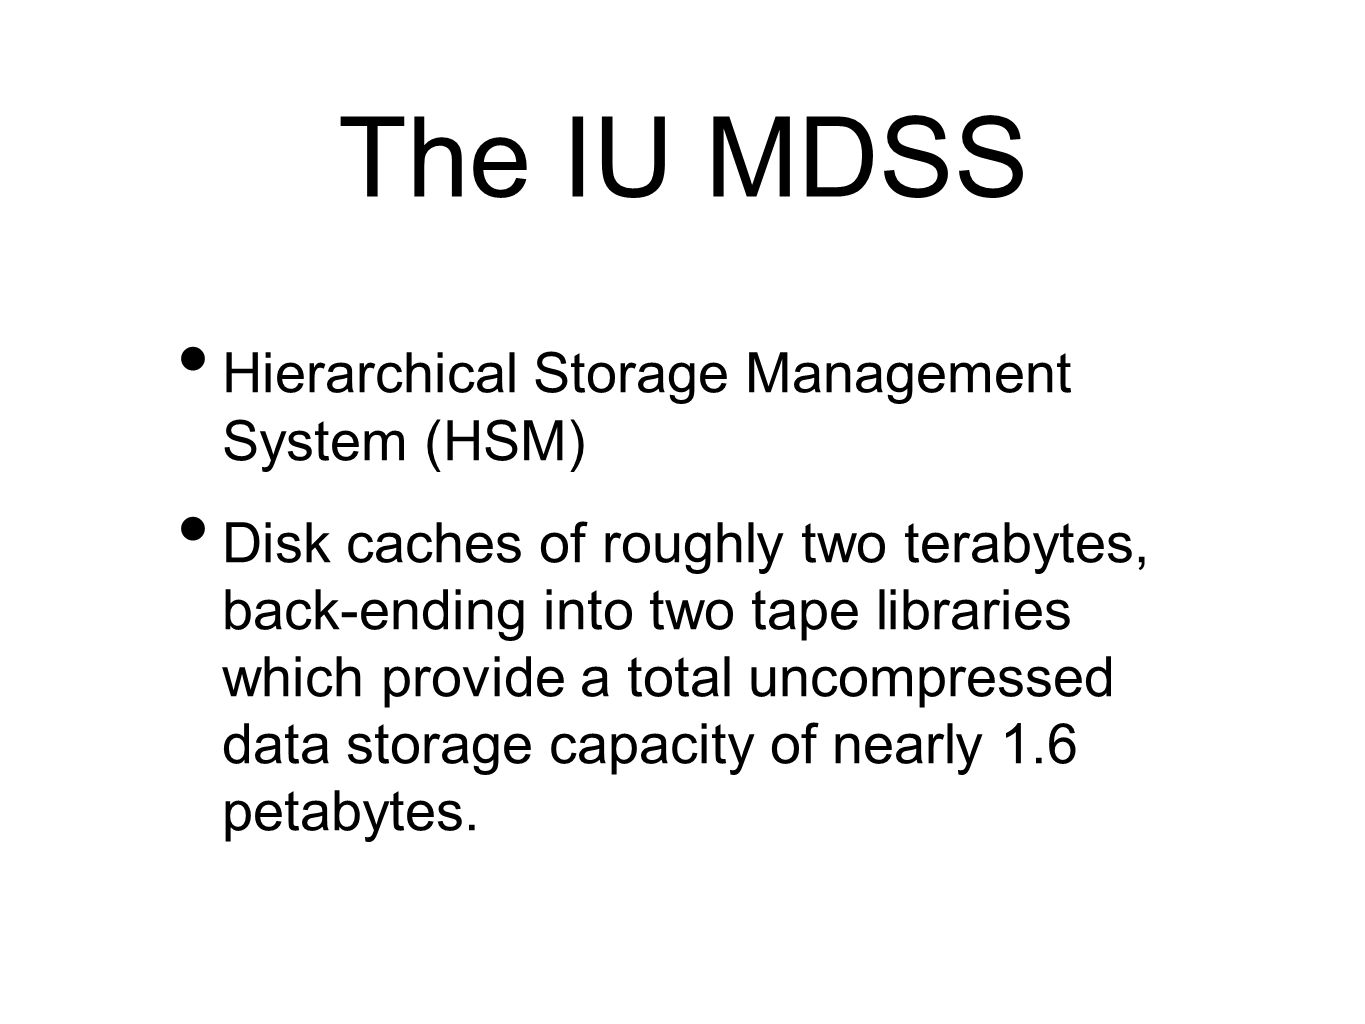 The IU MDSS Hierarchical Storage Management System (HSM) Disk caches of roughly two terabytes, back-ending into two tape libraries which provide a total uncompressed data storage capacity of nearly 1.6 petabytes.